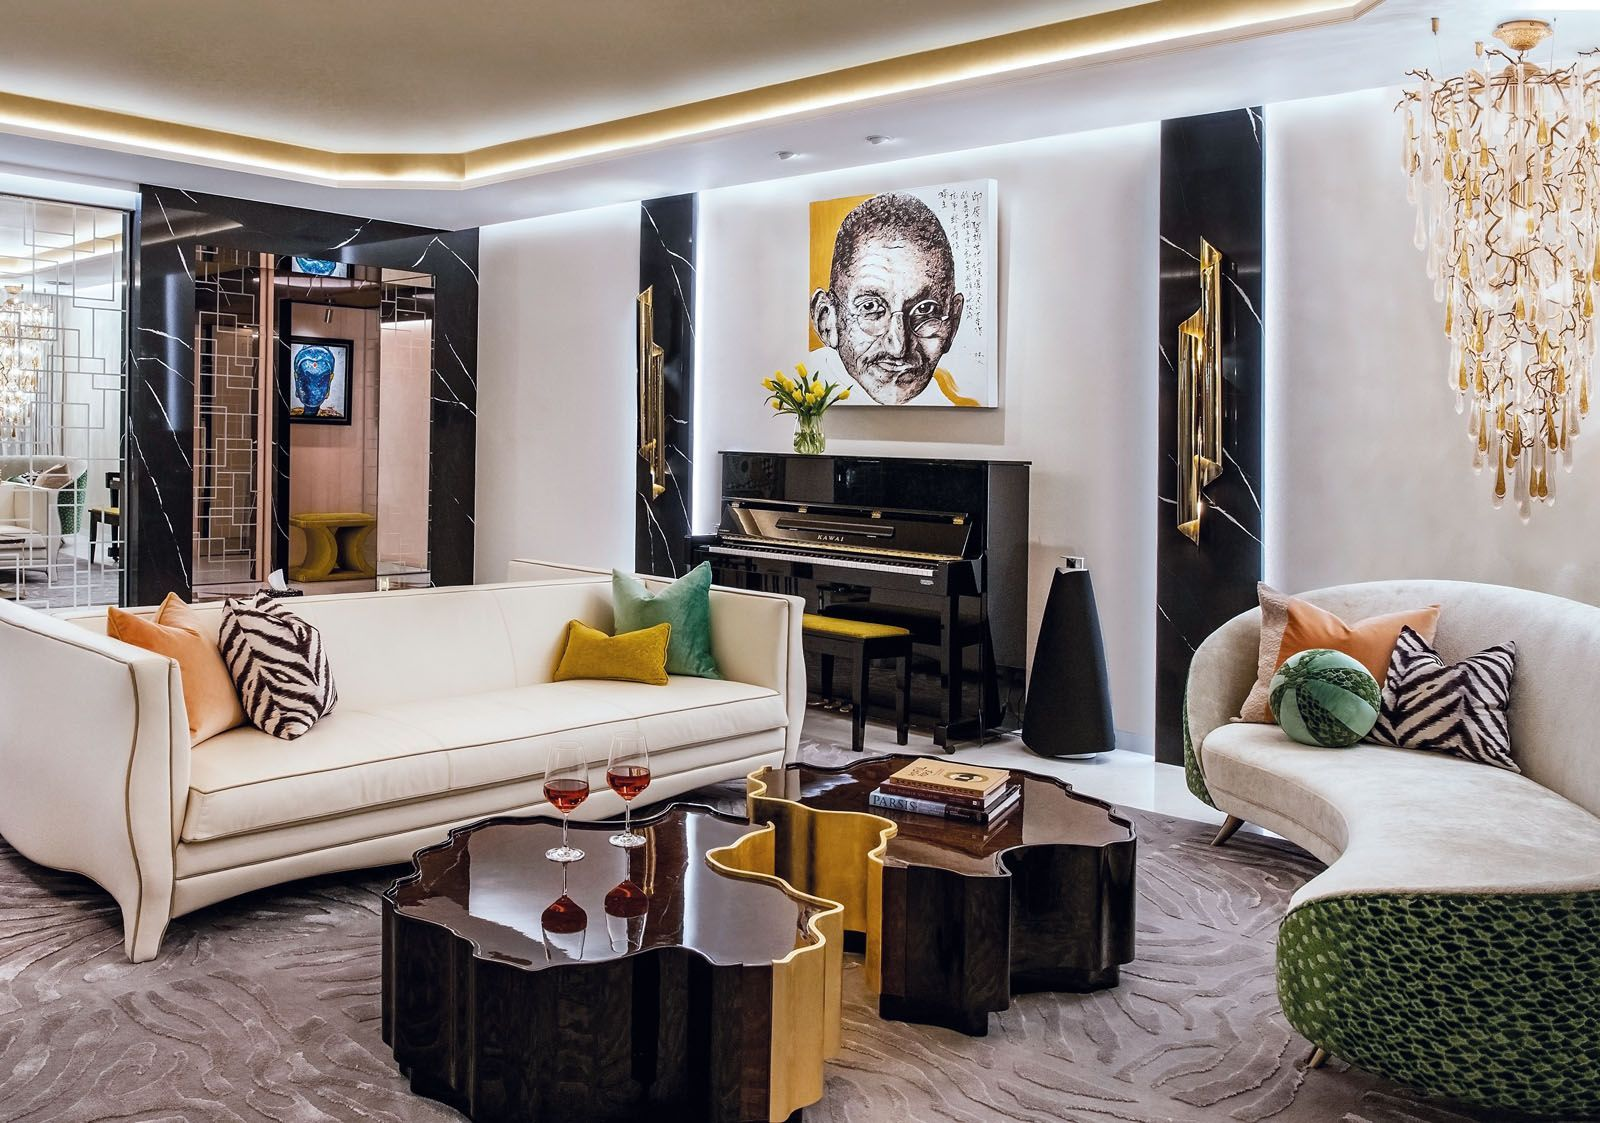 This living room features bespoke furniture by Design Intervention, a Serip chandelier, and a Mahatma Gandhi artwork